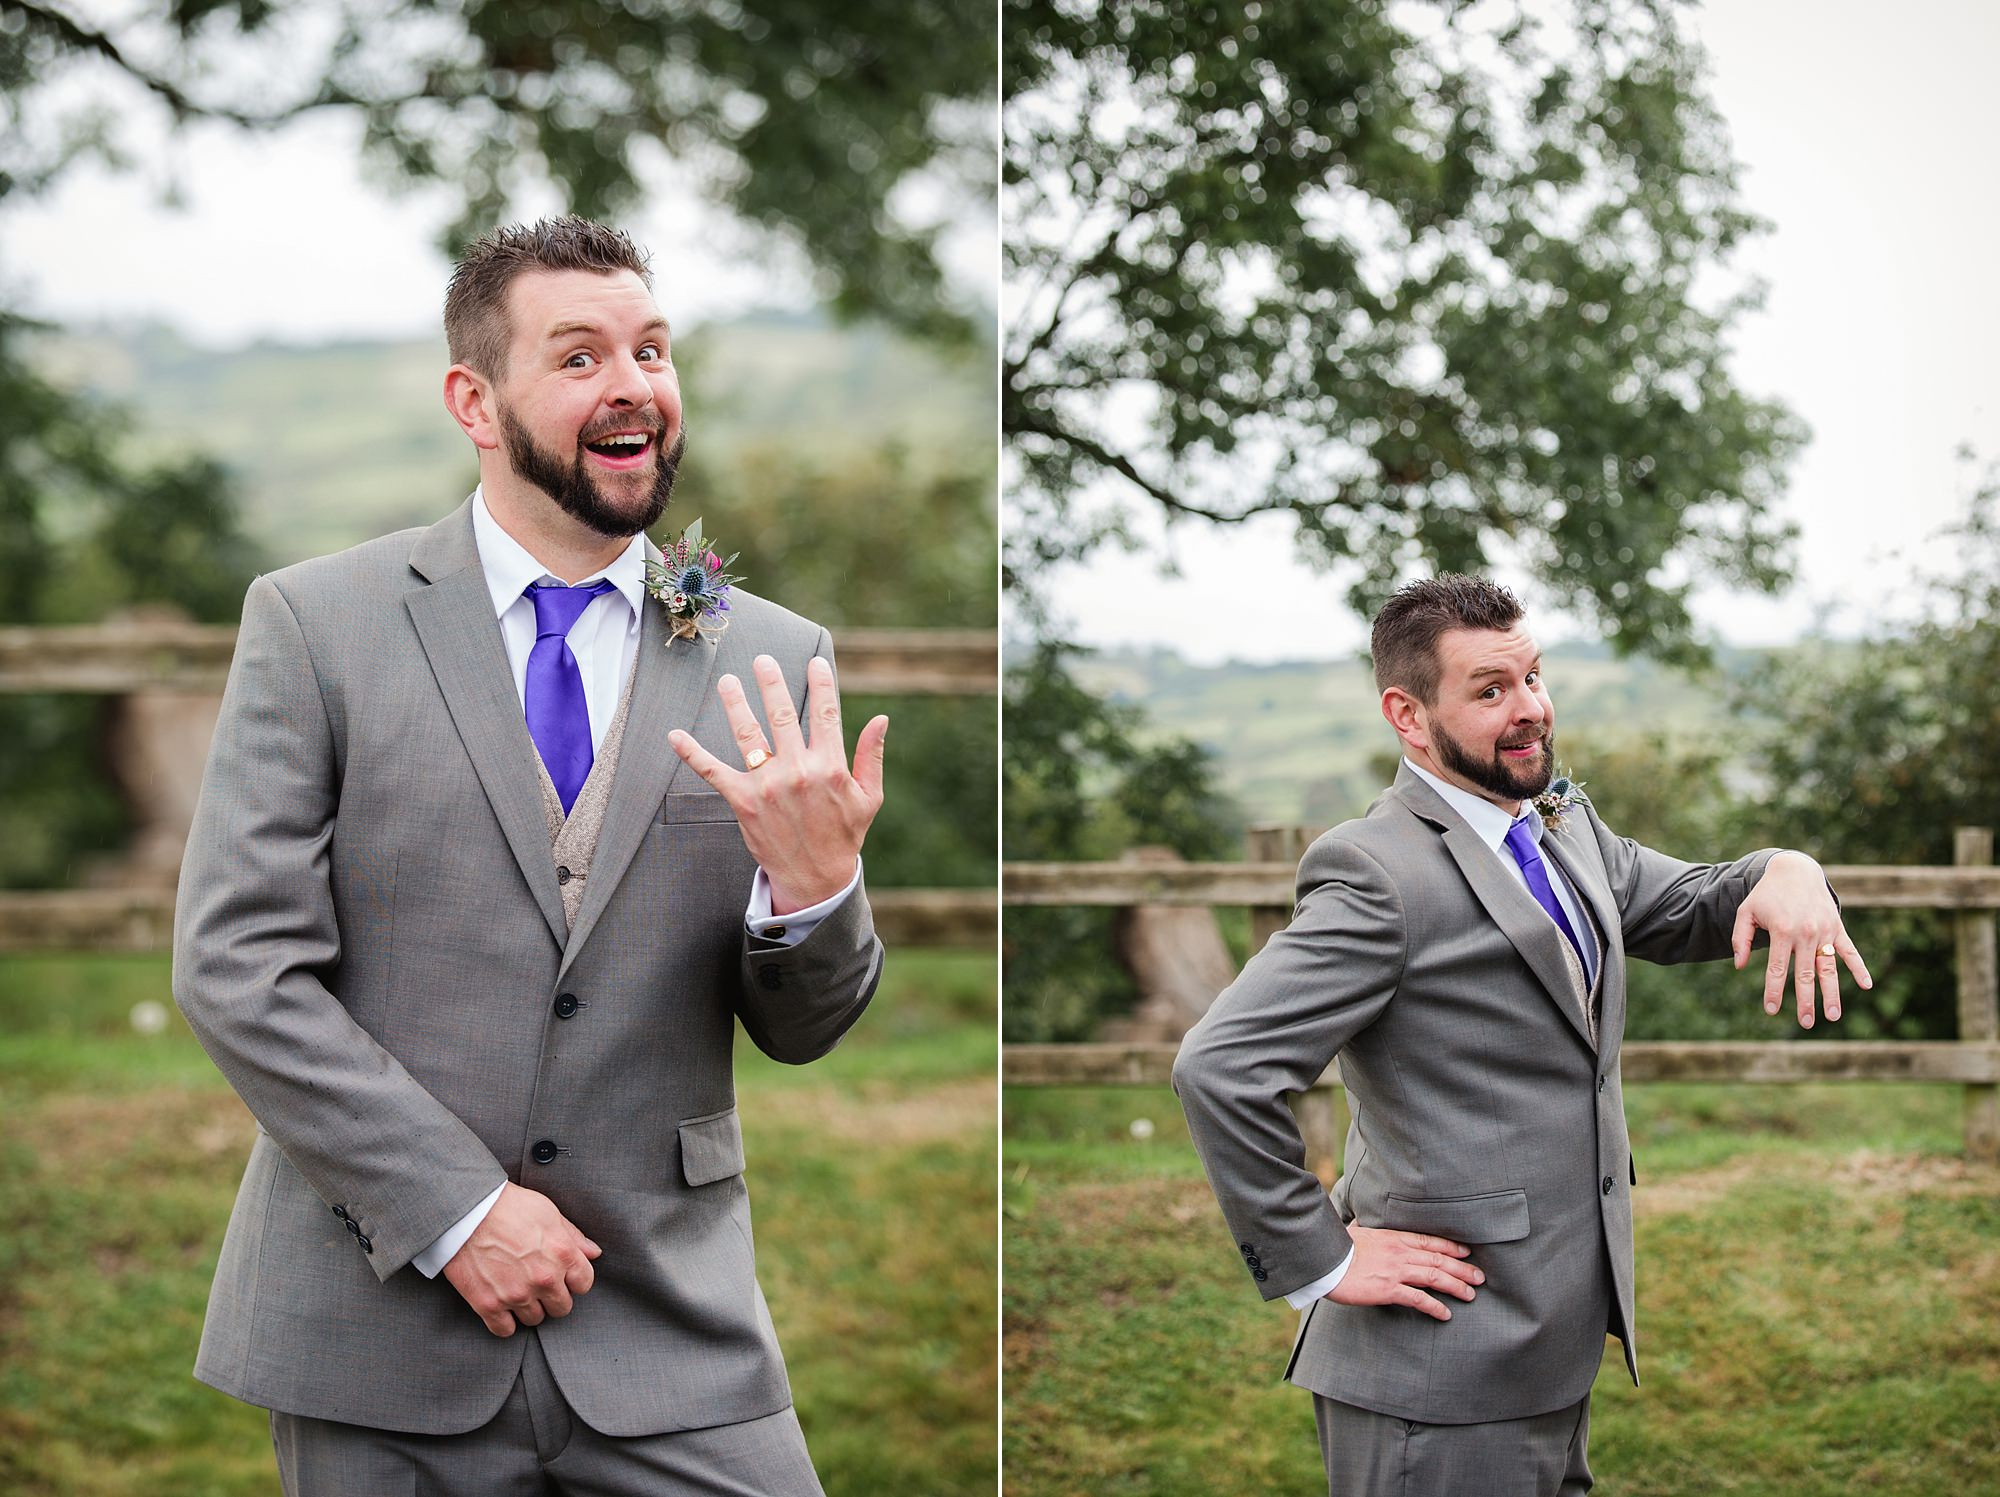 A fun wedding portrait of groom at Plas Isaf wedding